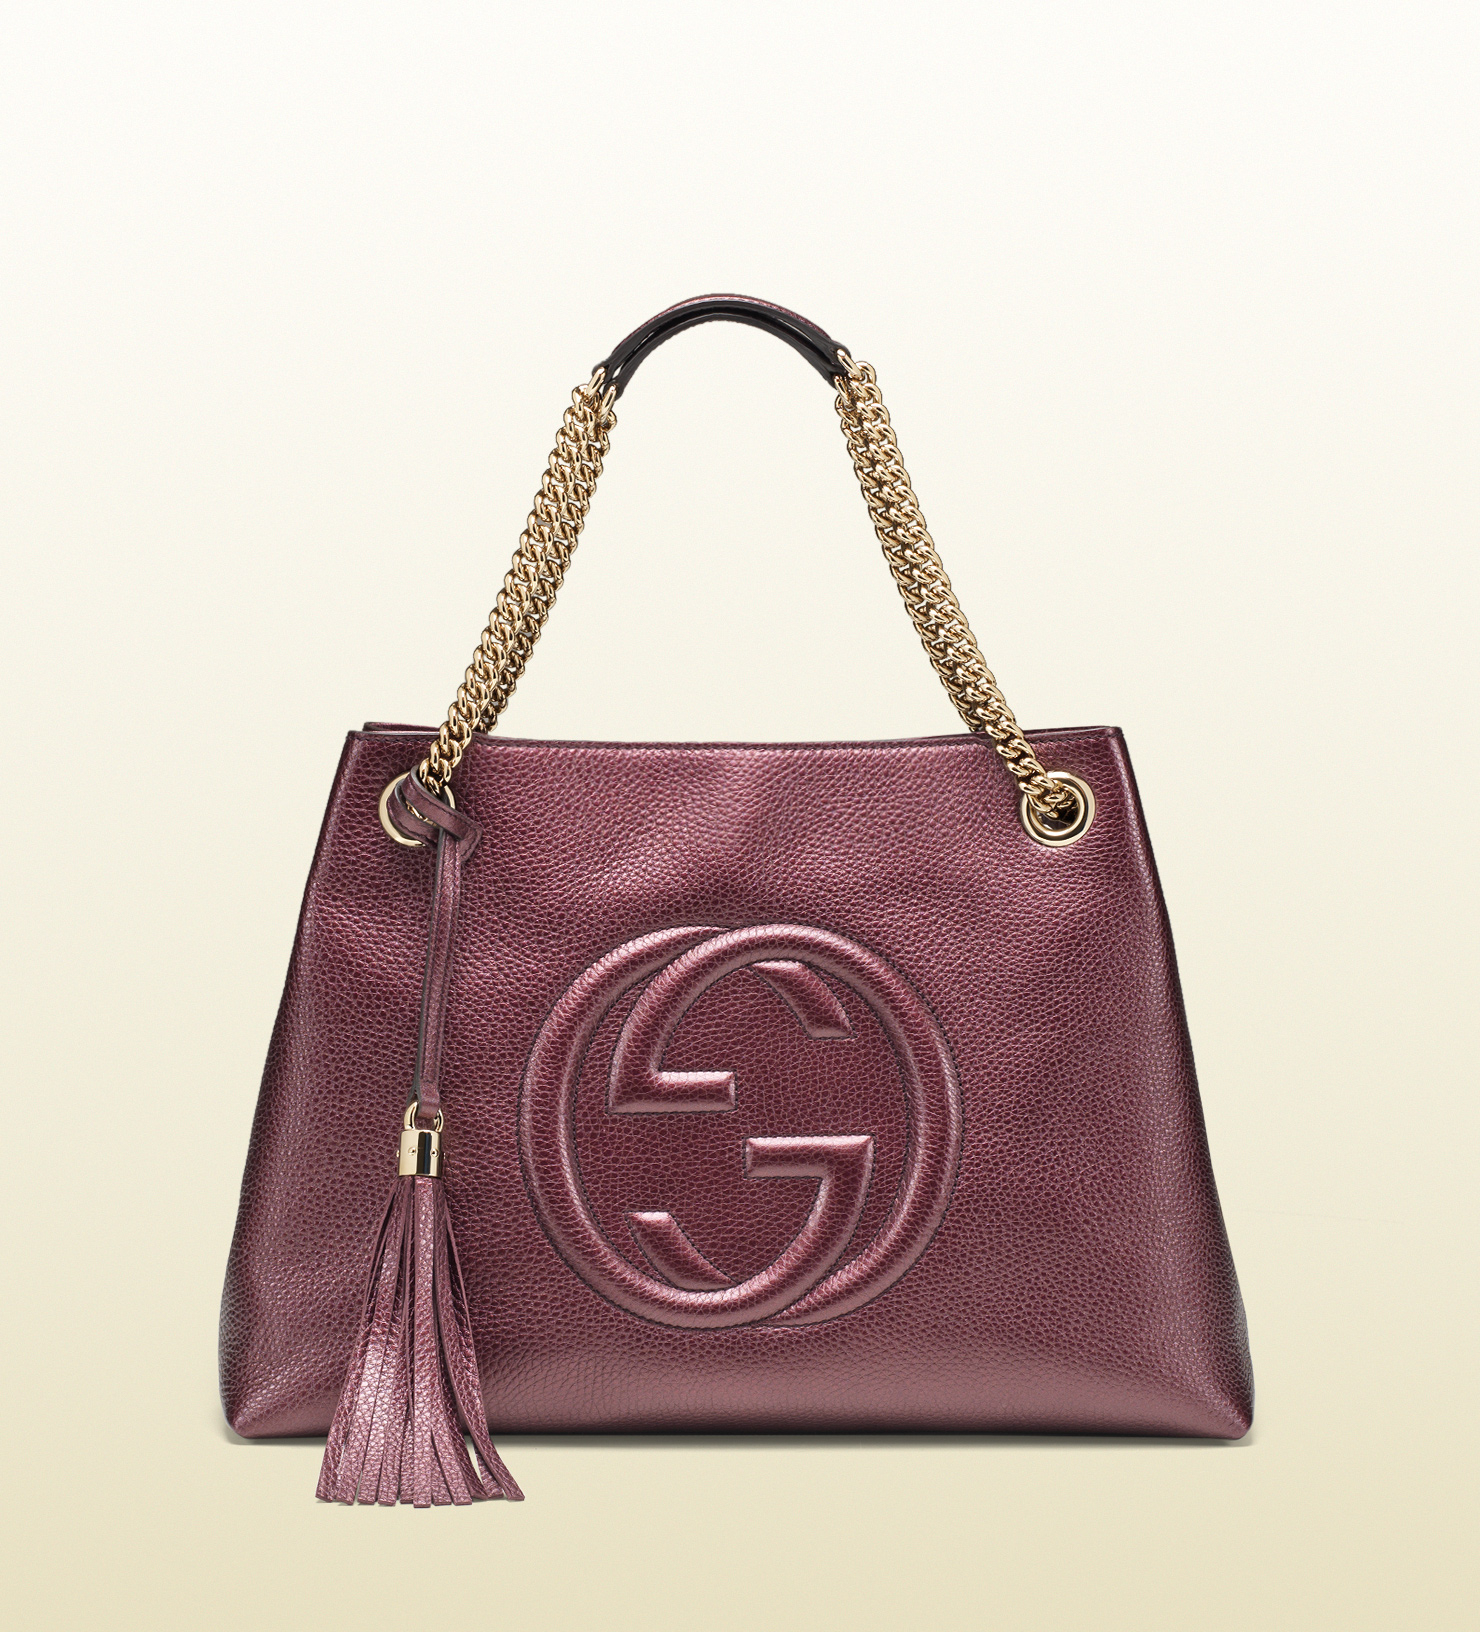 6ccf893318ba Bloomingdale's Gucci Soho Bag | Stanford Center for Opportunity ...